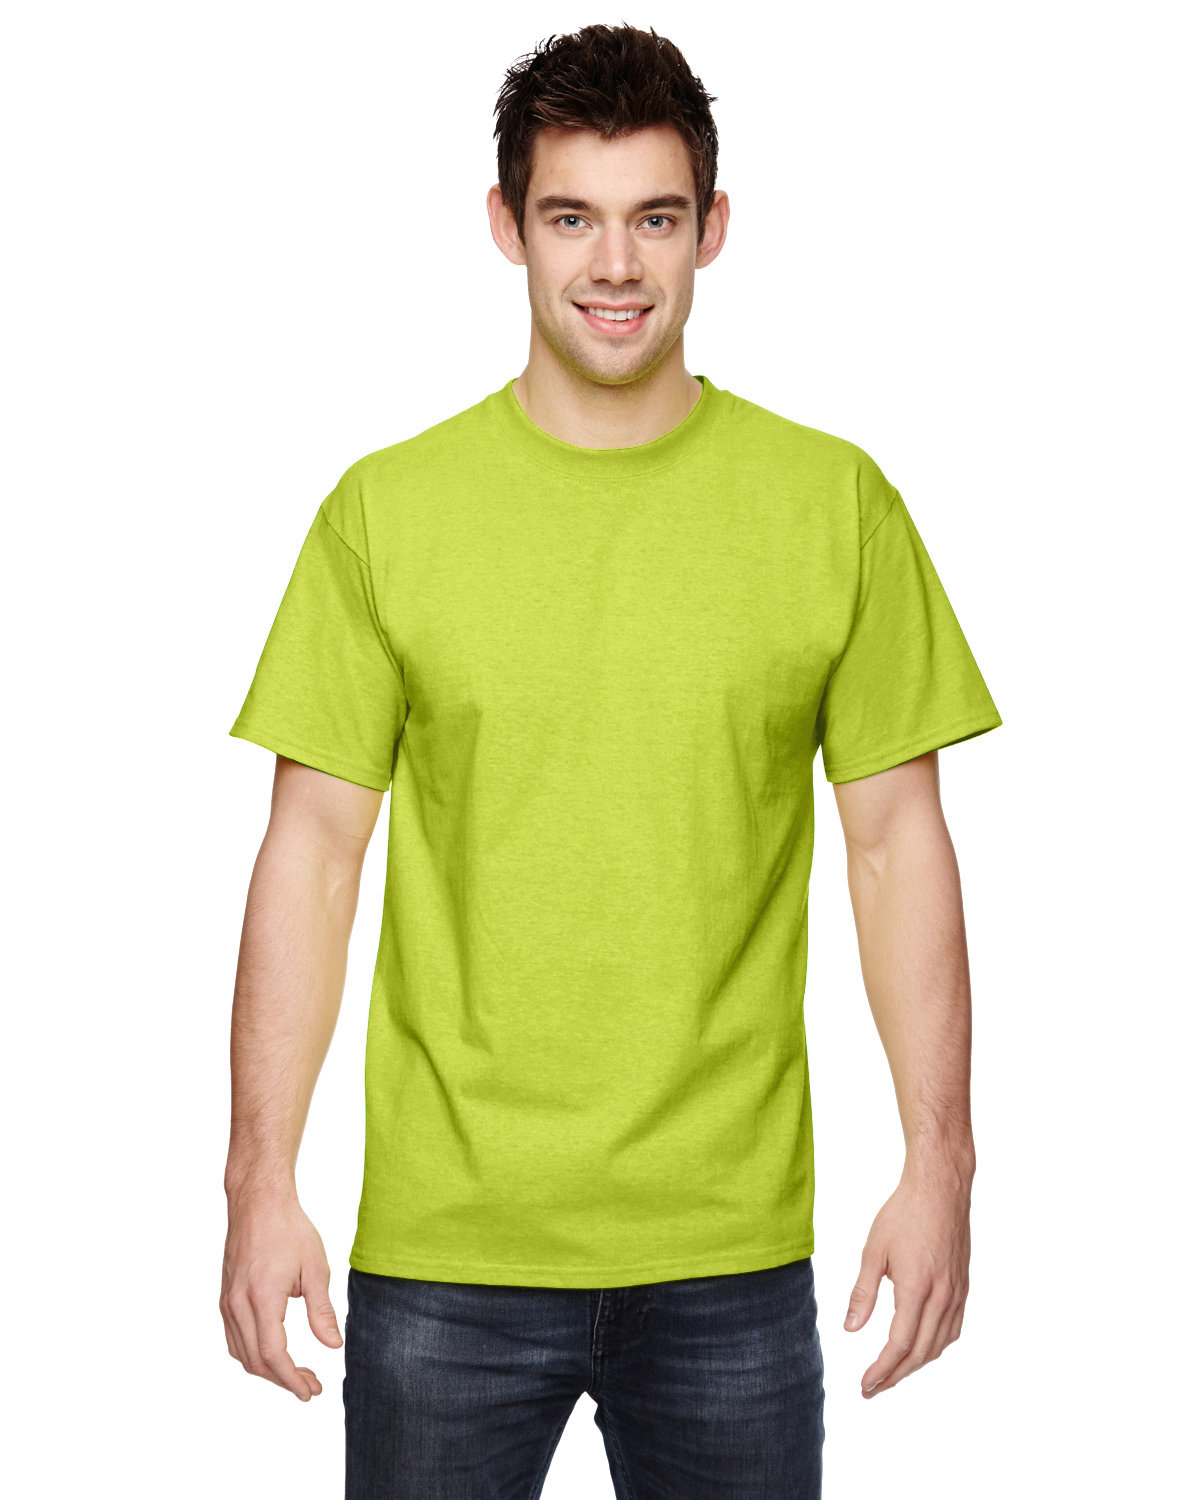 Fruit of the Loom Adult HD Cotton™ T-Shirt SAFETY GREEN